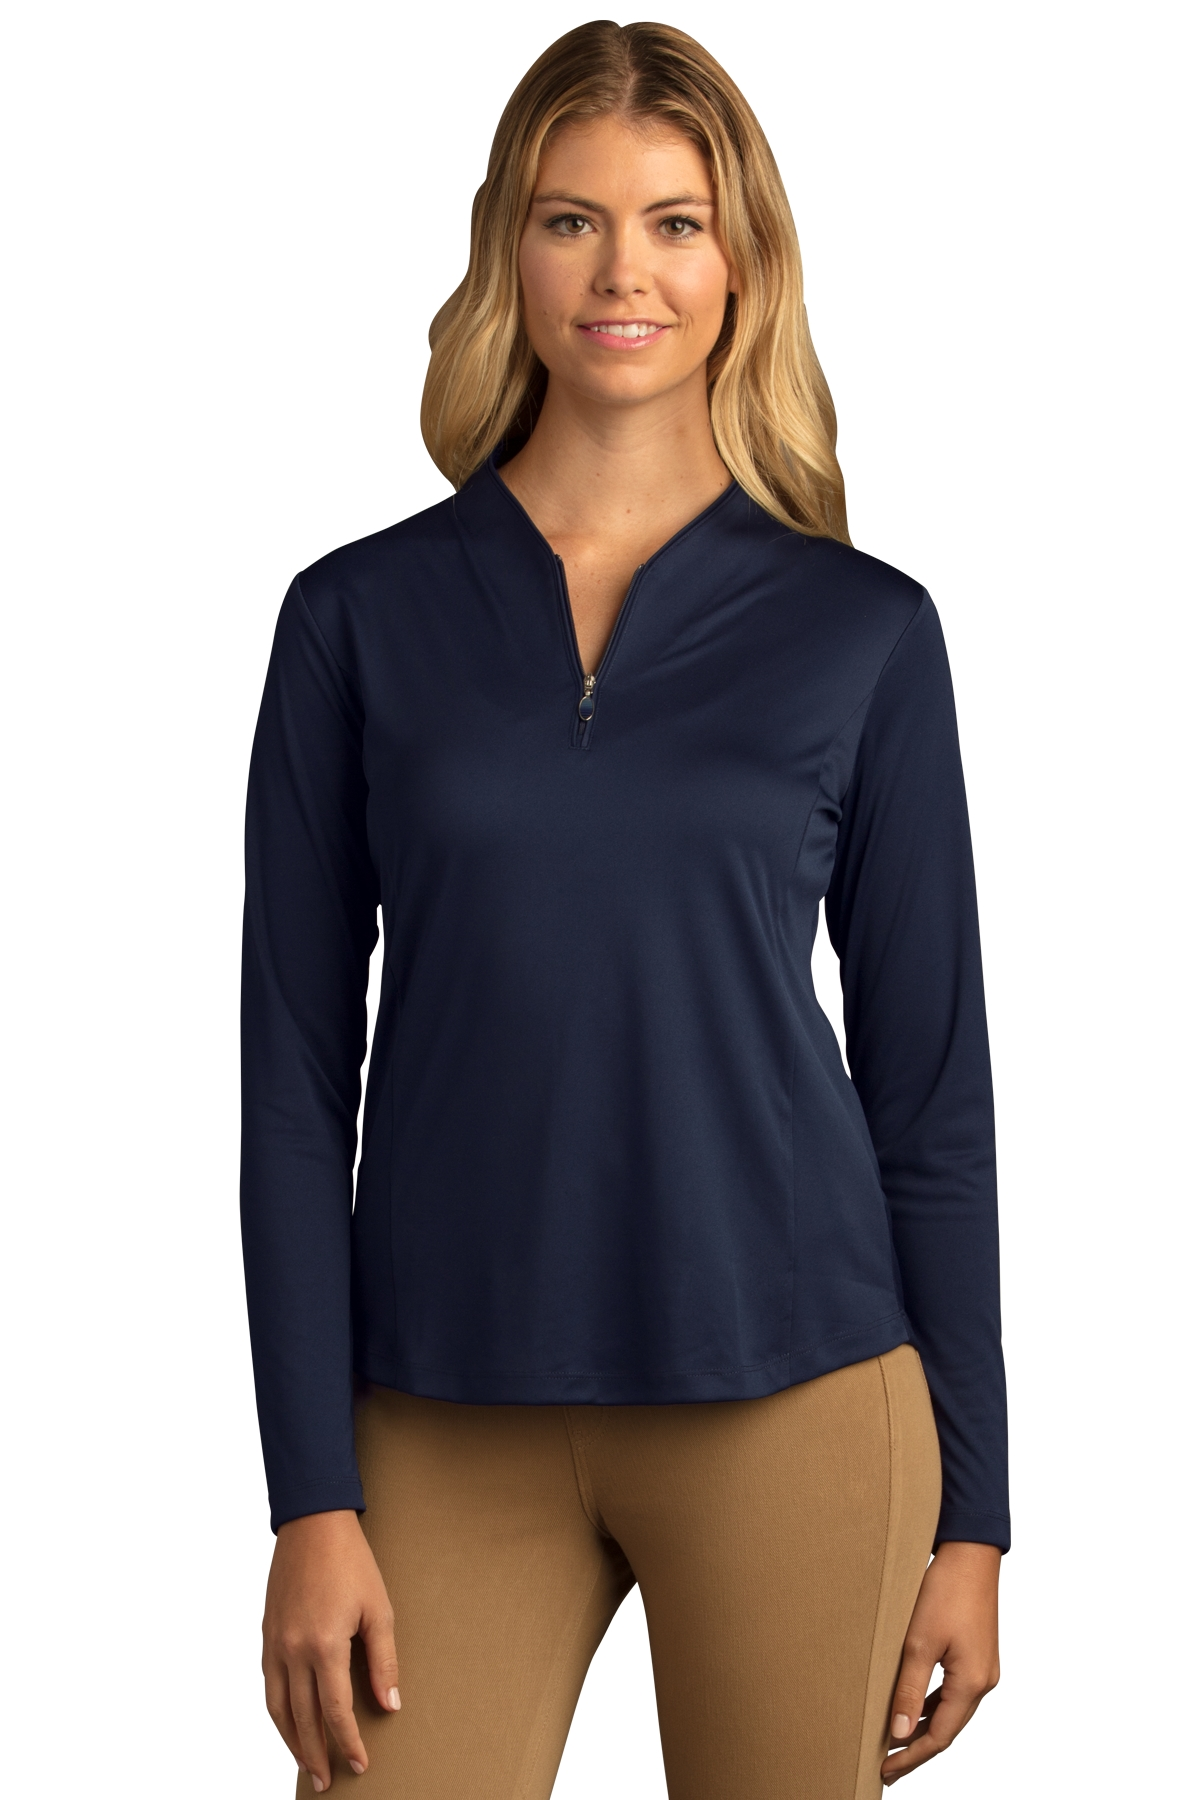 Greg Norman WNS8K464 - Women's Play Dry Tulip Neck 1/...